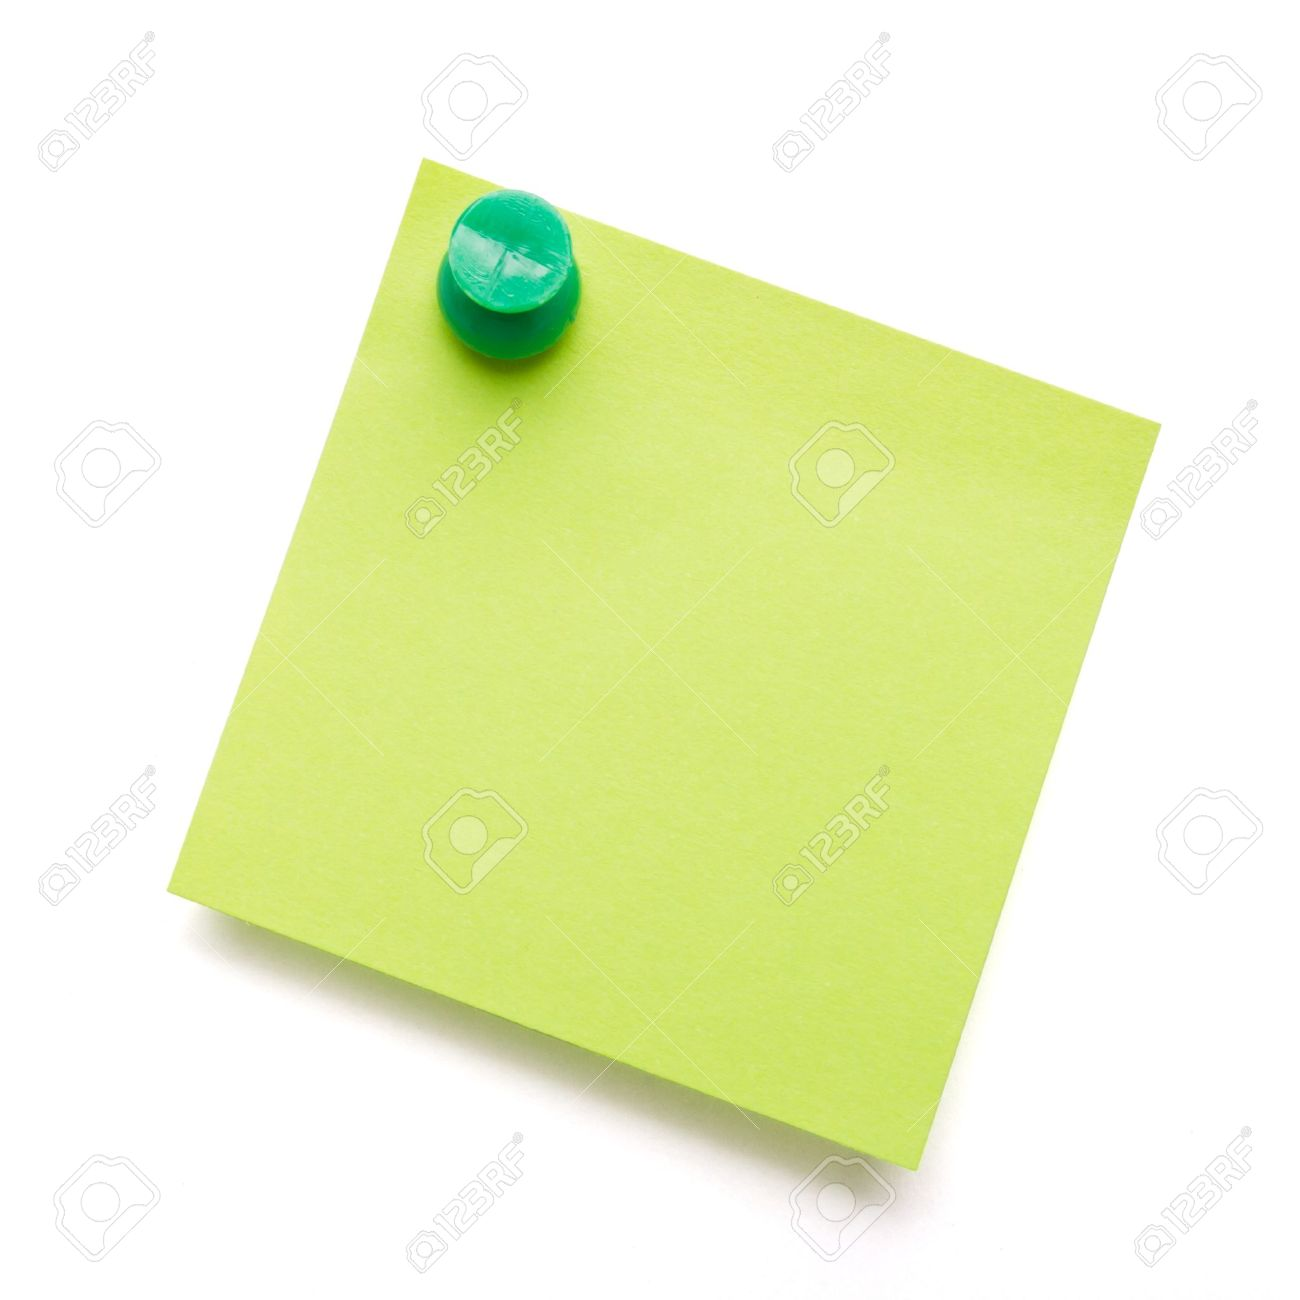 1300x1300 Green Self Adhesive Post It Note With Green Push Pin On White